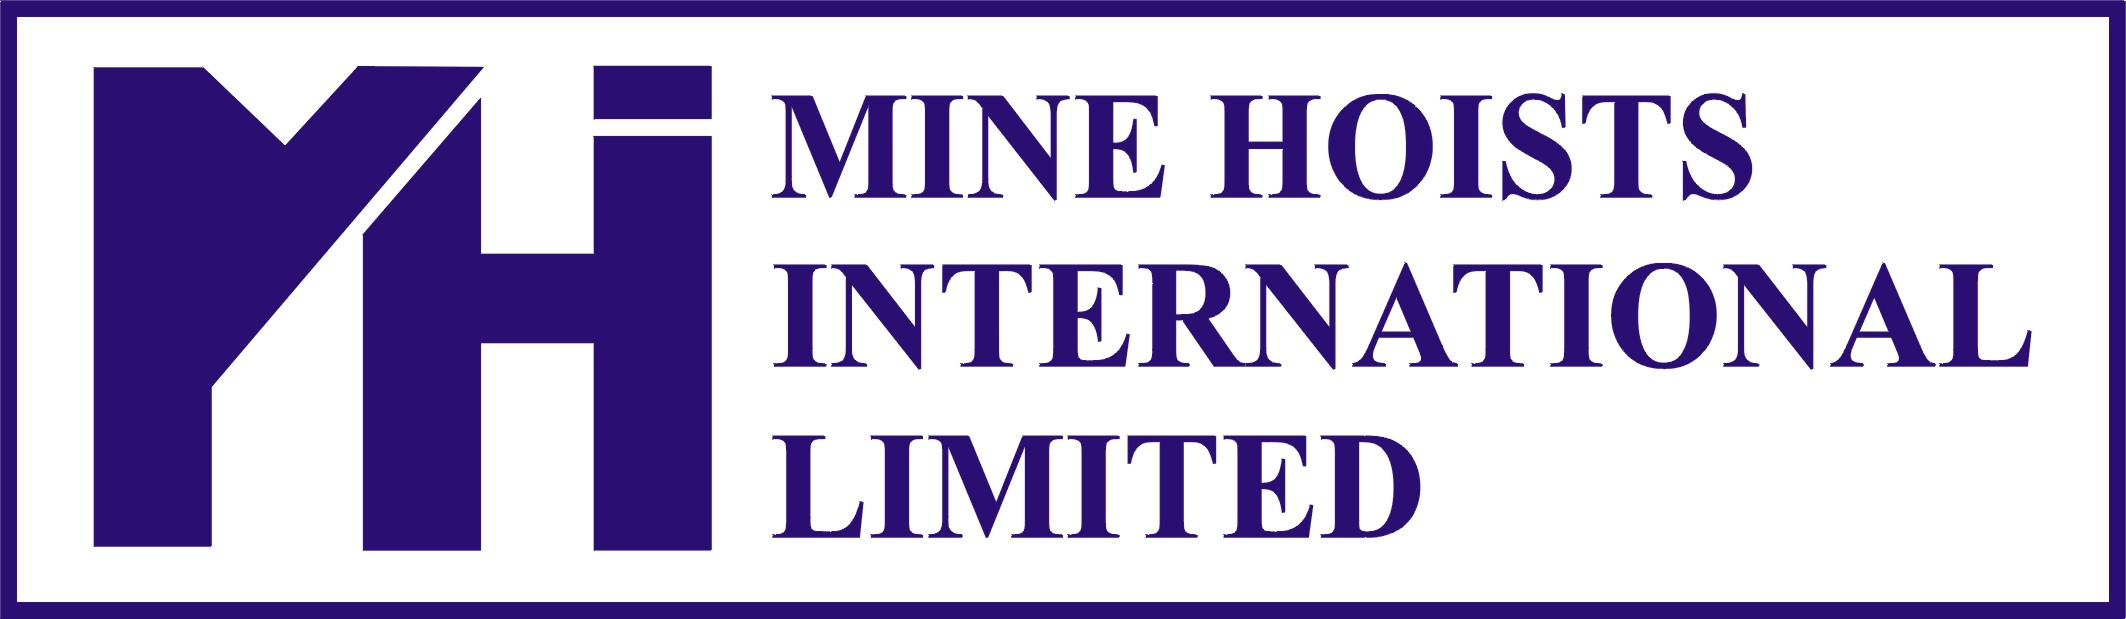 Mine Hoists International Limited